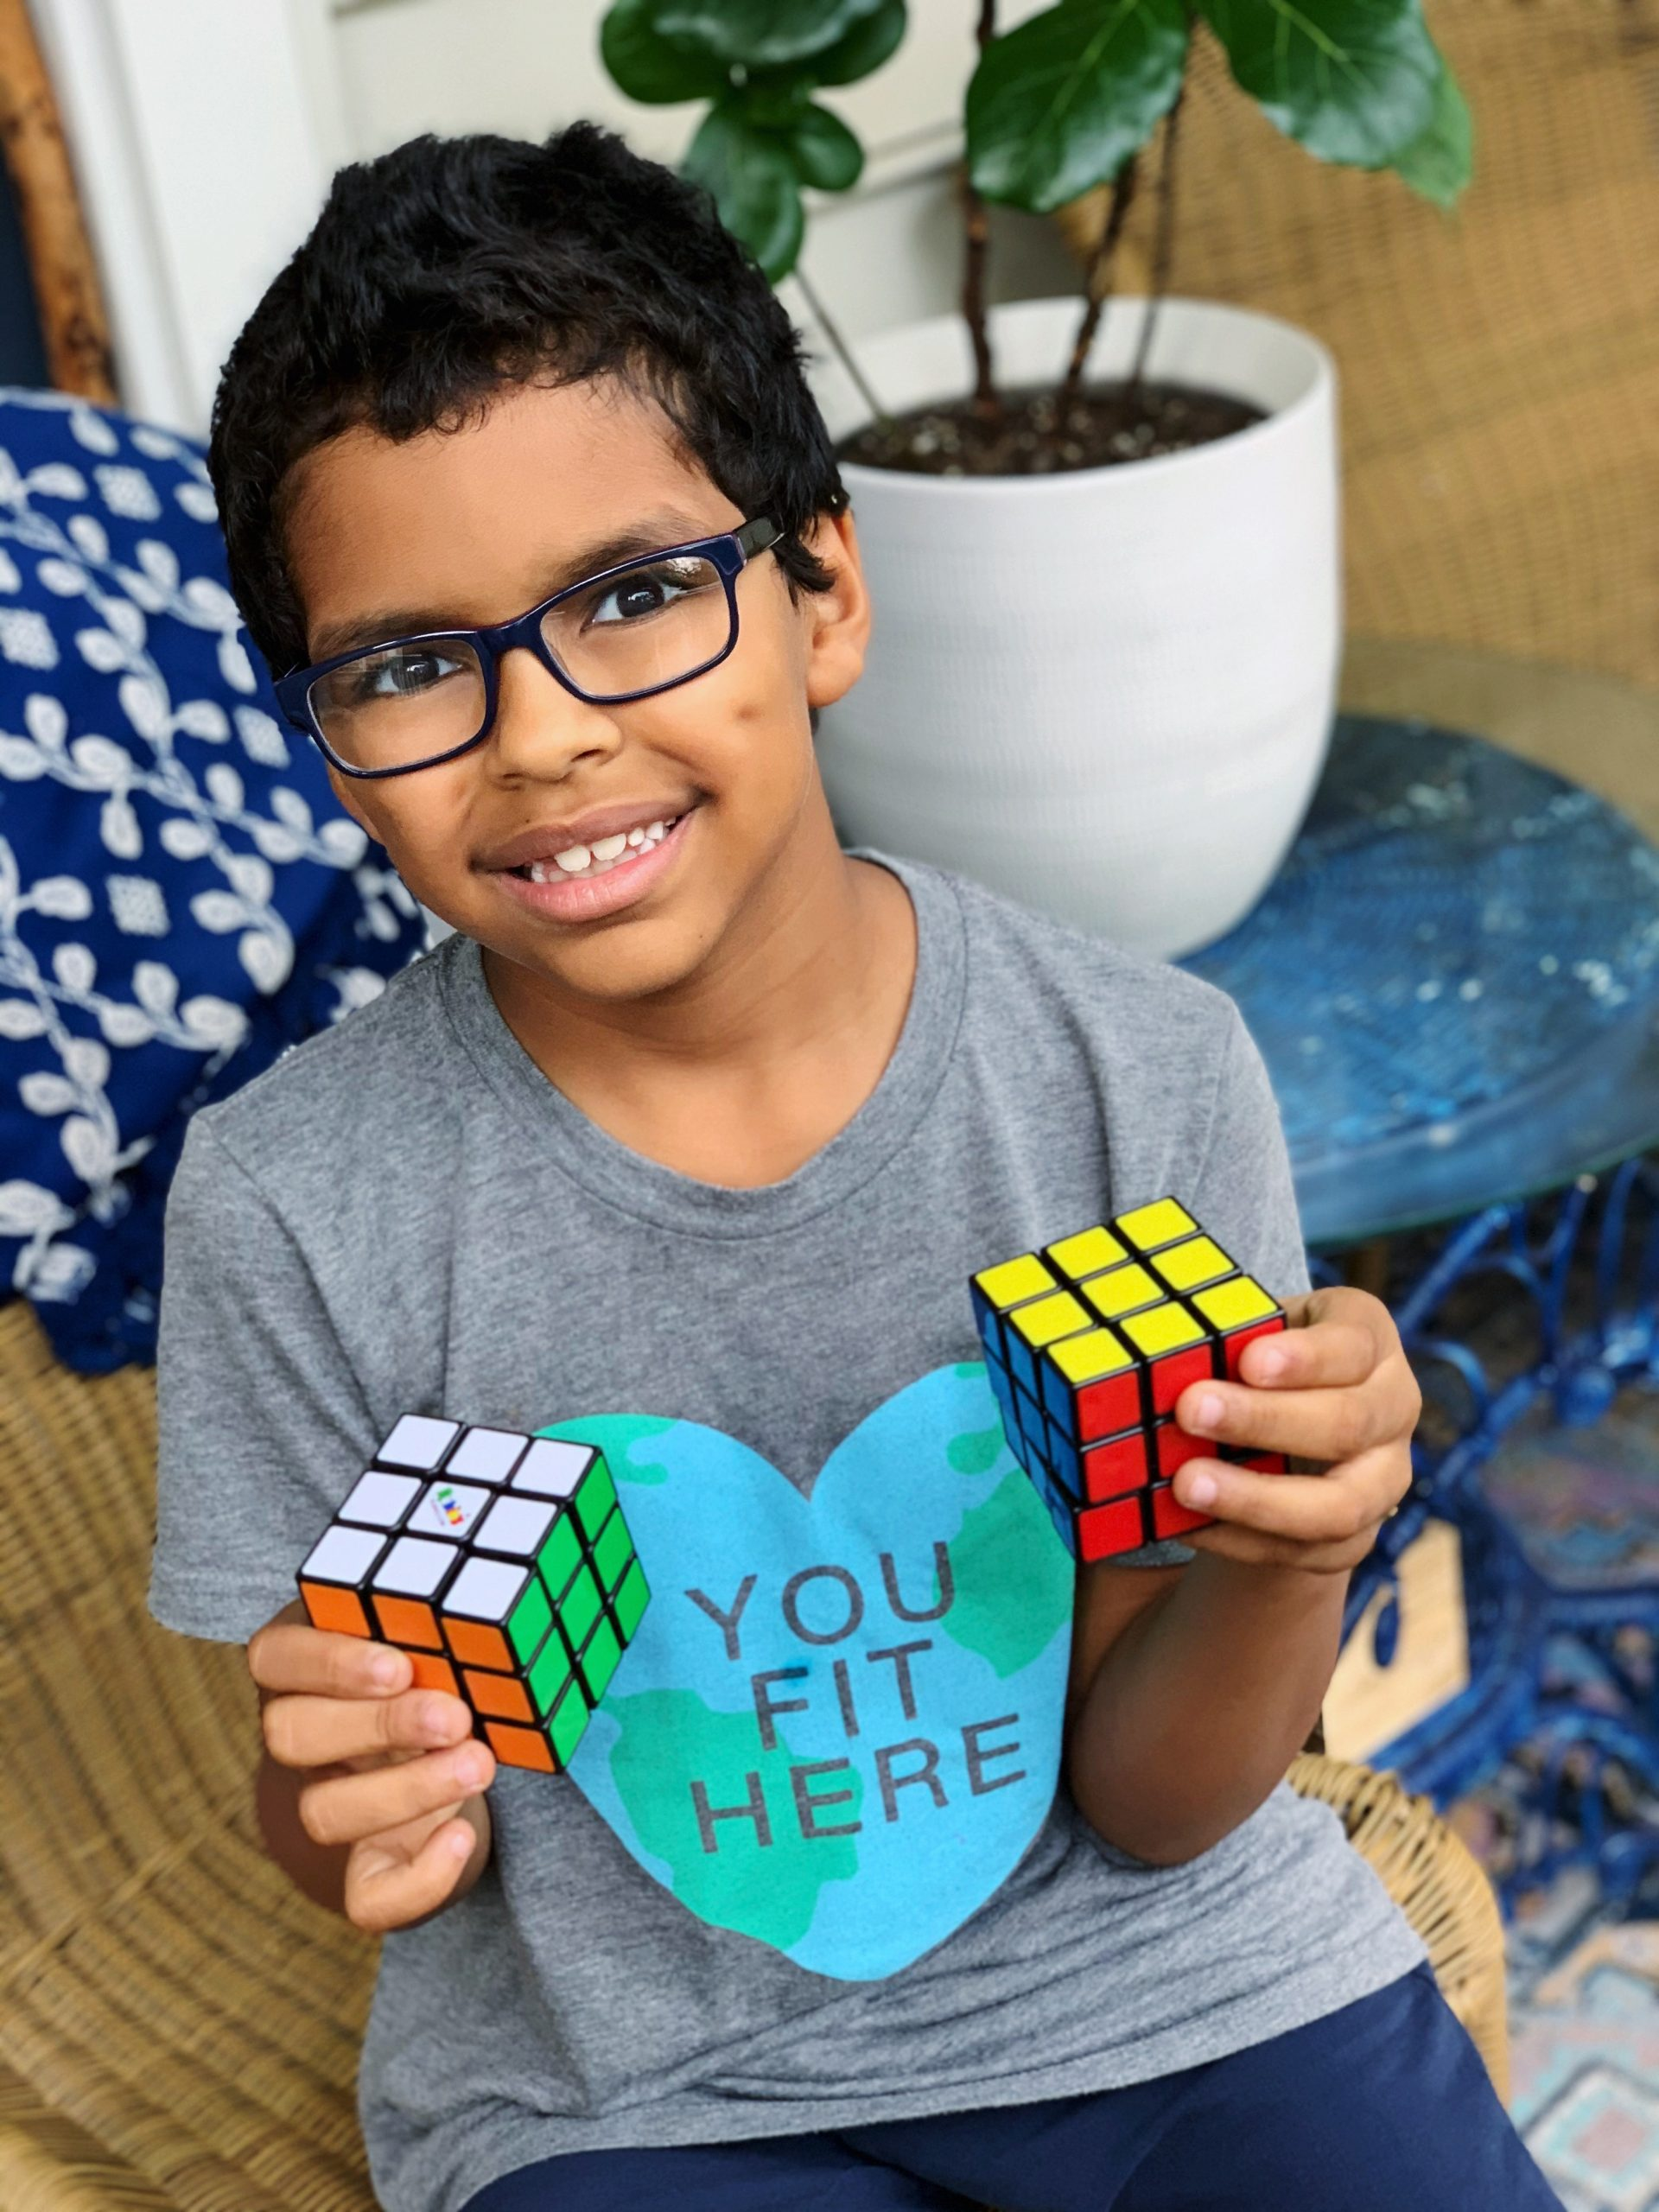 A smiling boy holding his first two solved 3x3 Rubik's cubes.